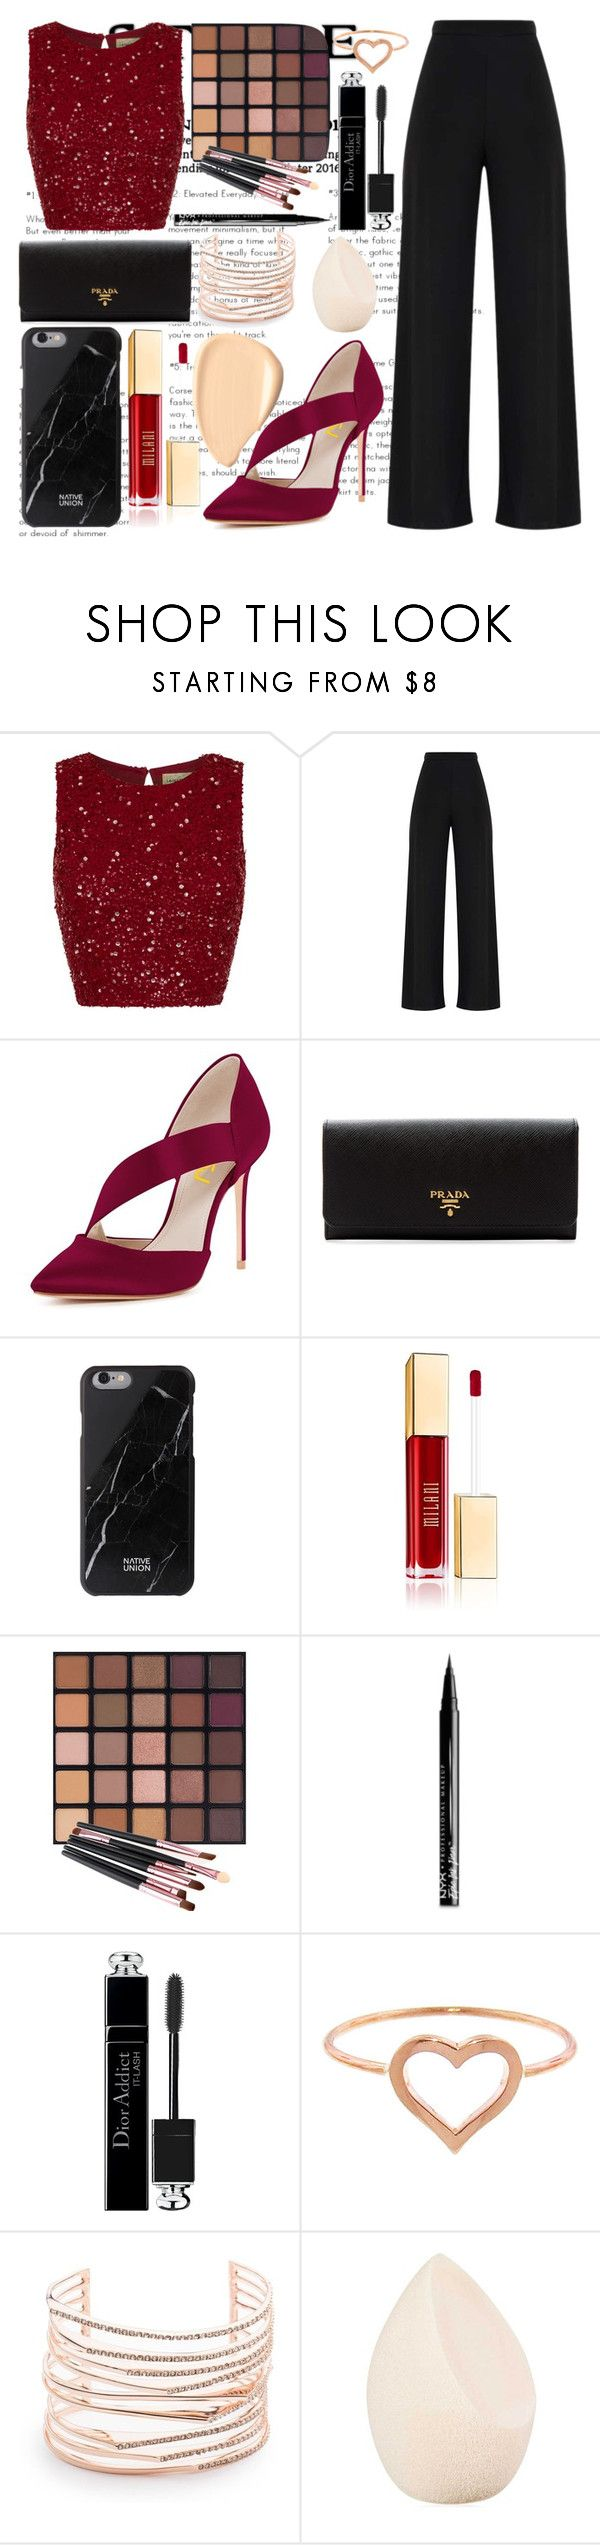 """Glam, Glam, Glam"" by magriatrix ❤ liked on Polyvore featuring Prada, NYX, Christian Dior, Jennifer Meyer Jewelry and Alexis Bittar"